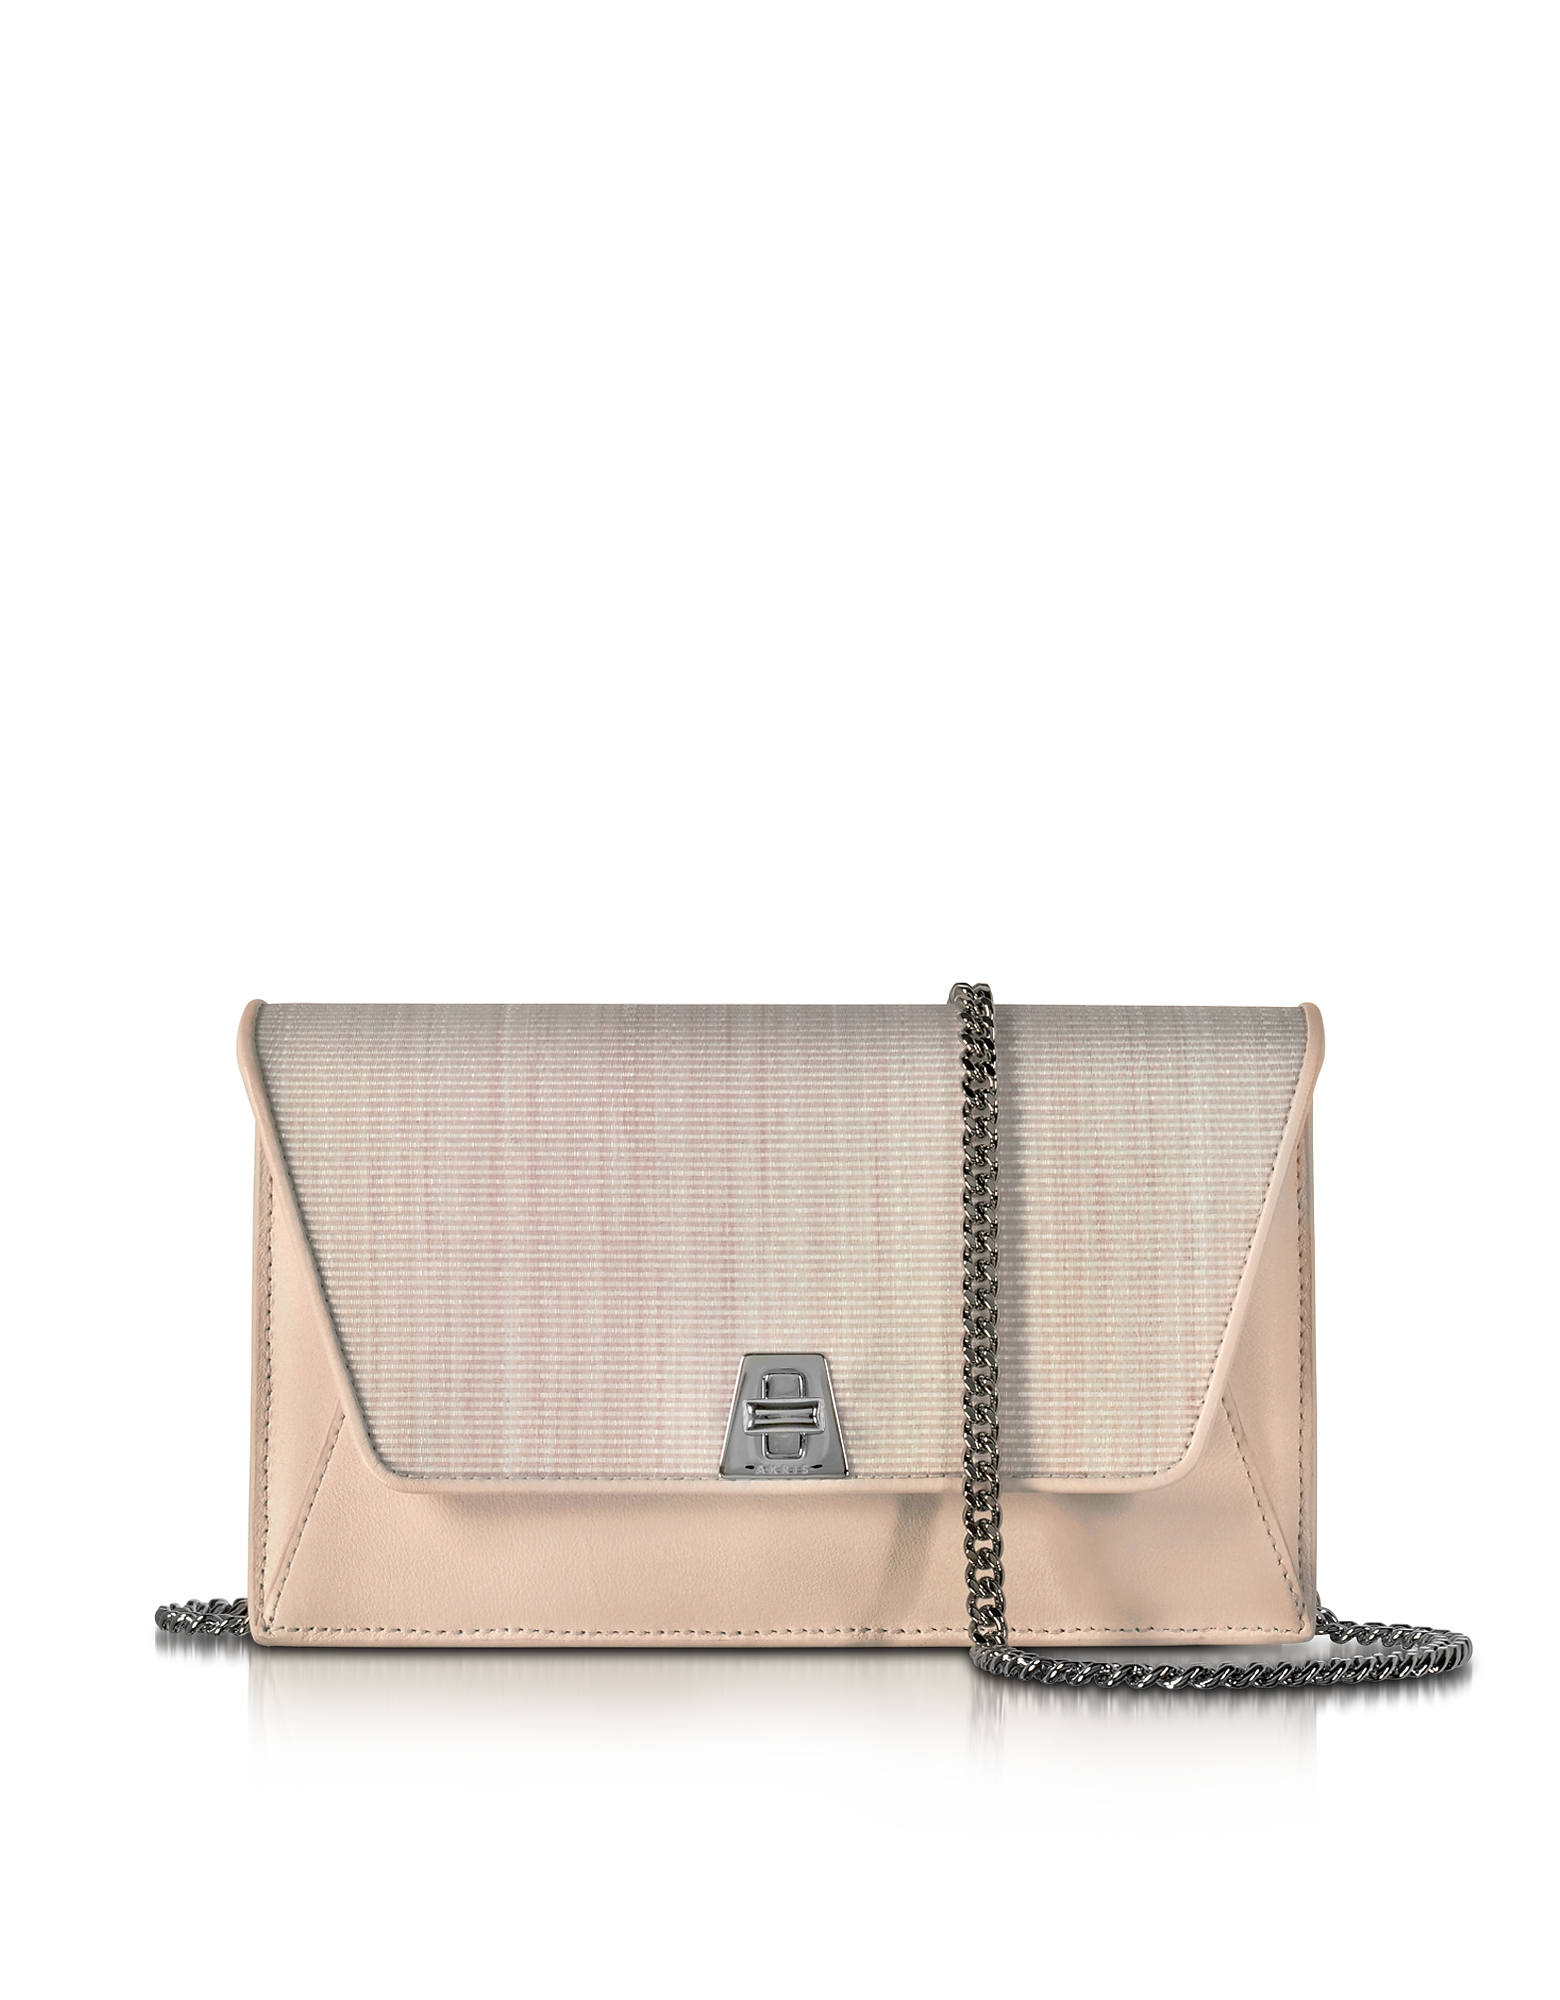 Akris Handbags, Anouk Pale Rose Horsehair and Leather Clutch w/Chain